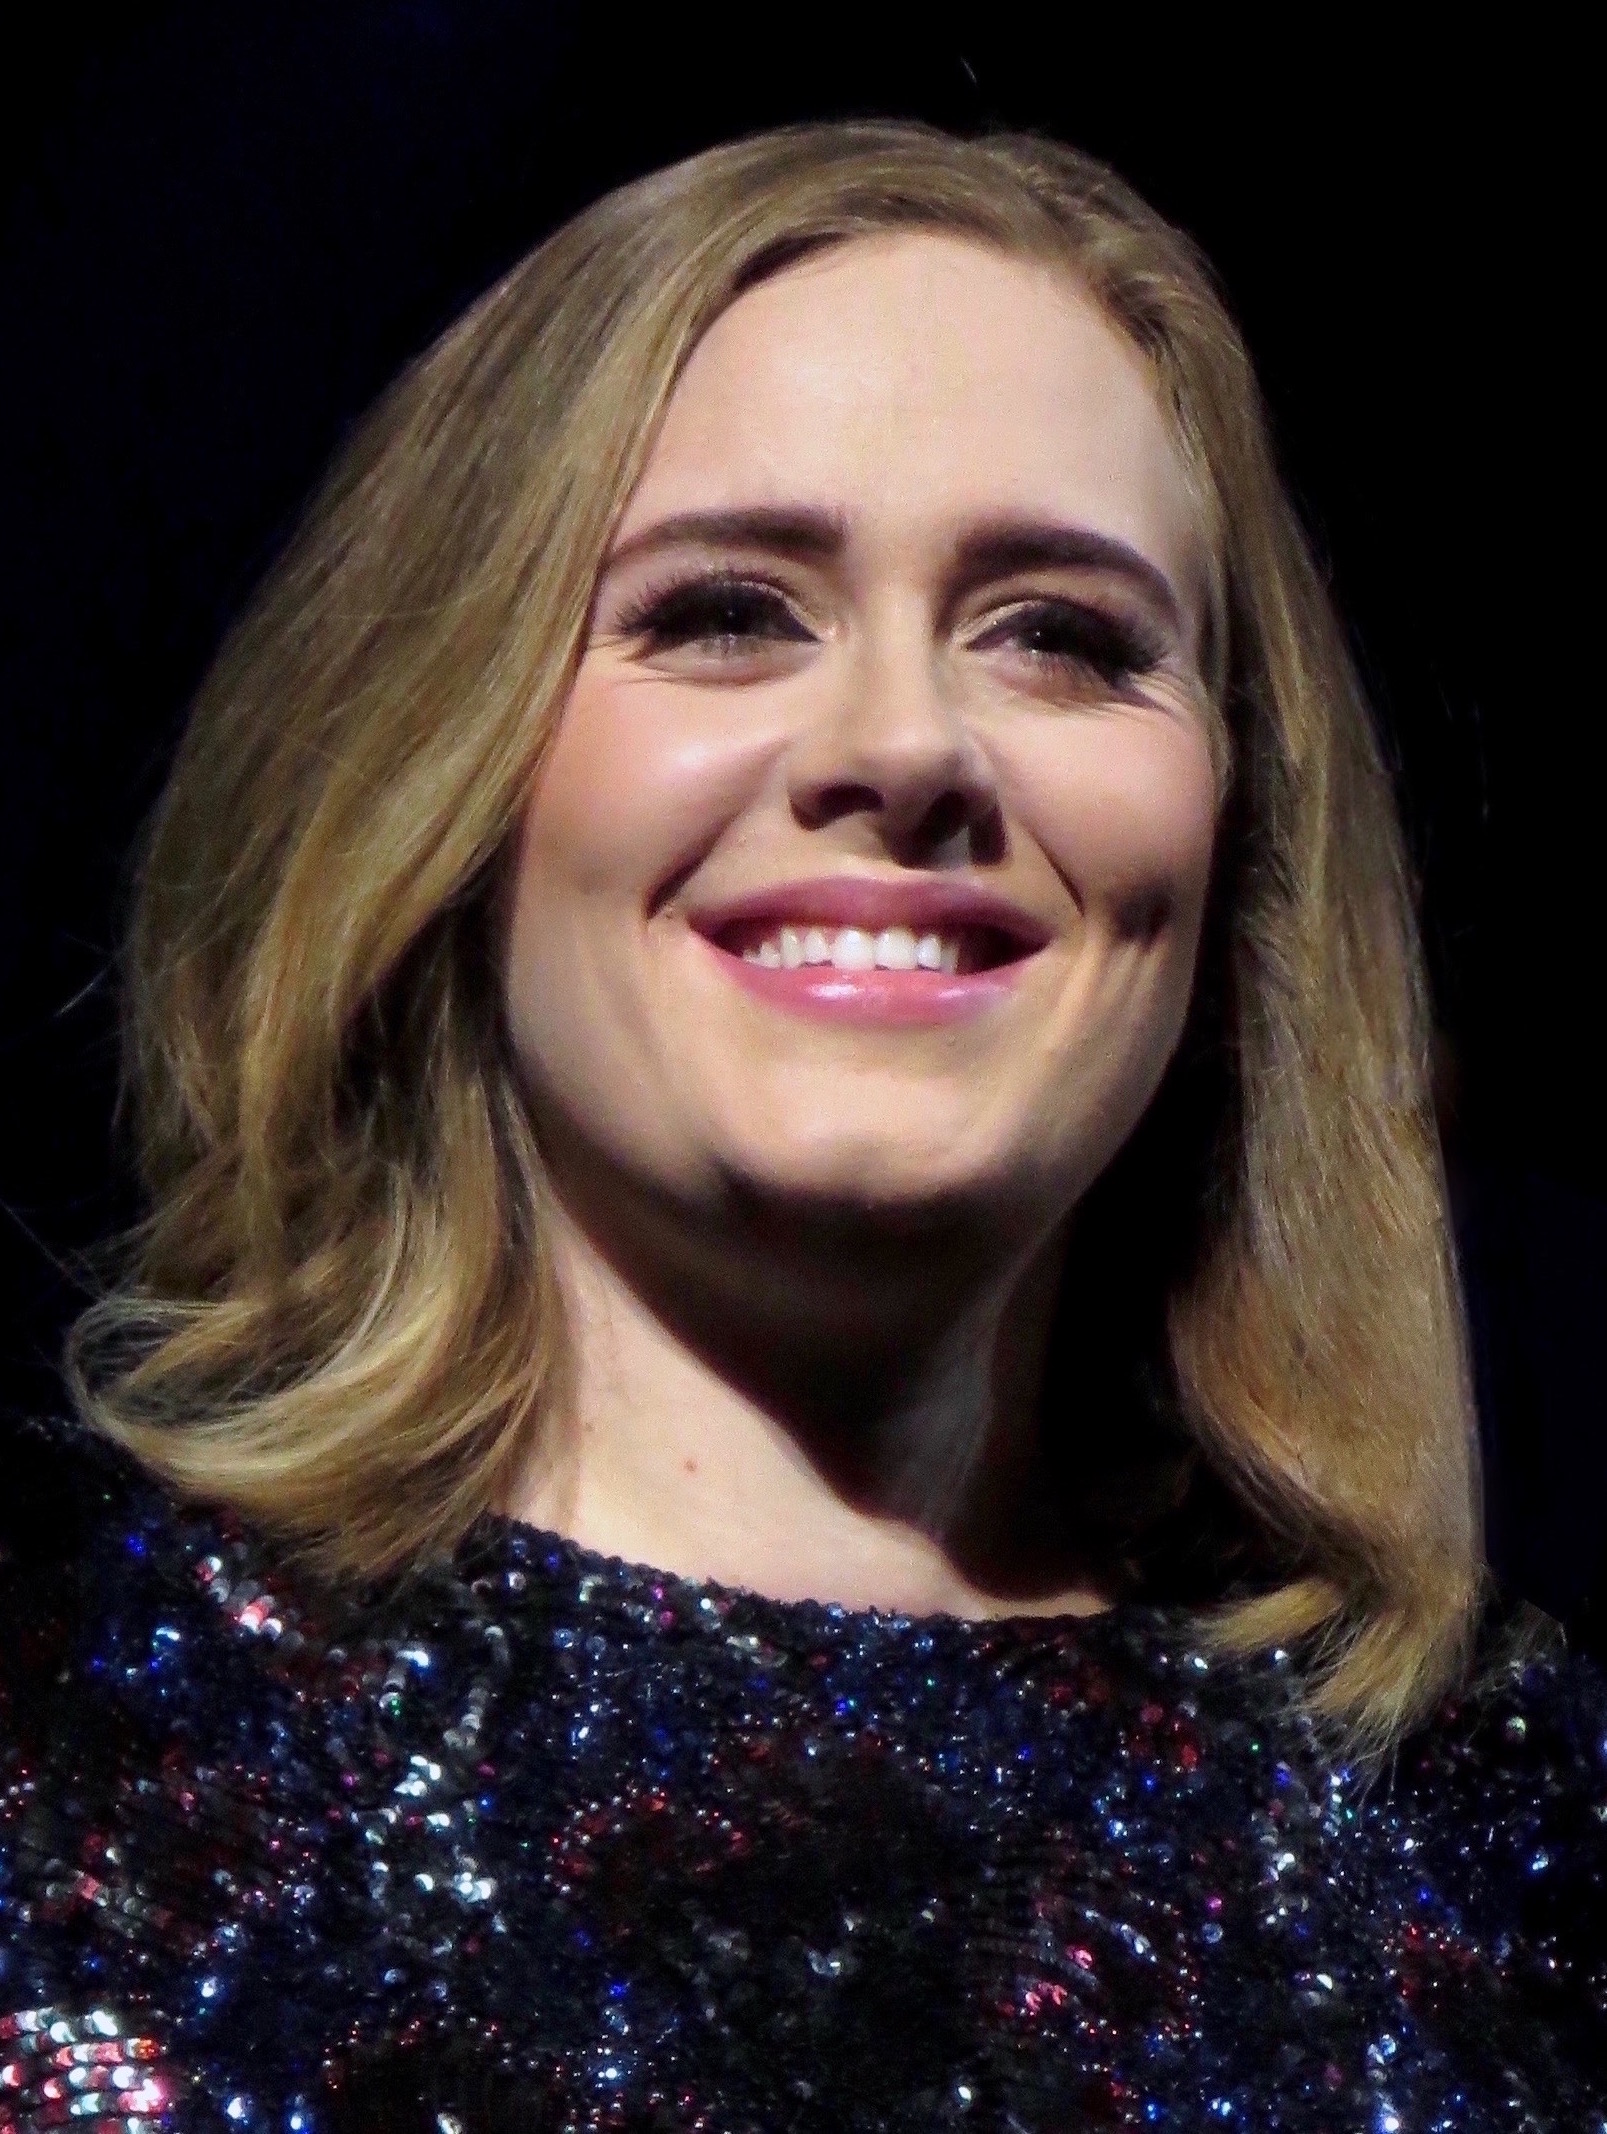 https://upload.wikimedia.org/wikipedia/commons/7/7c/Adele_2016.jpg